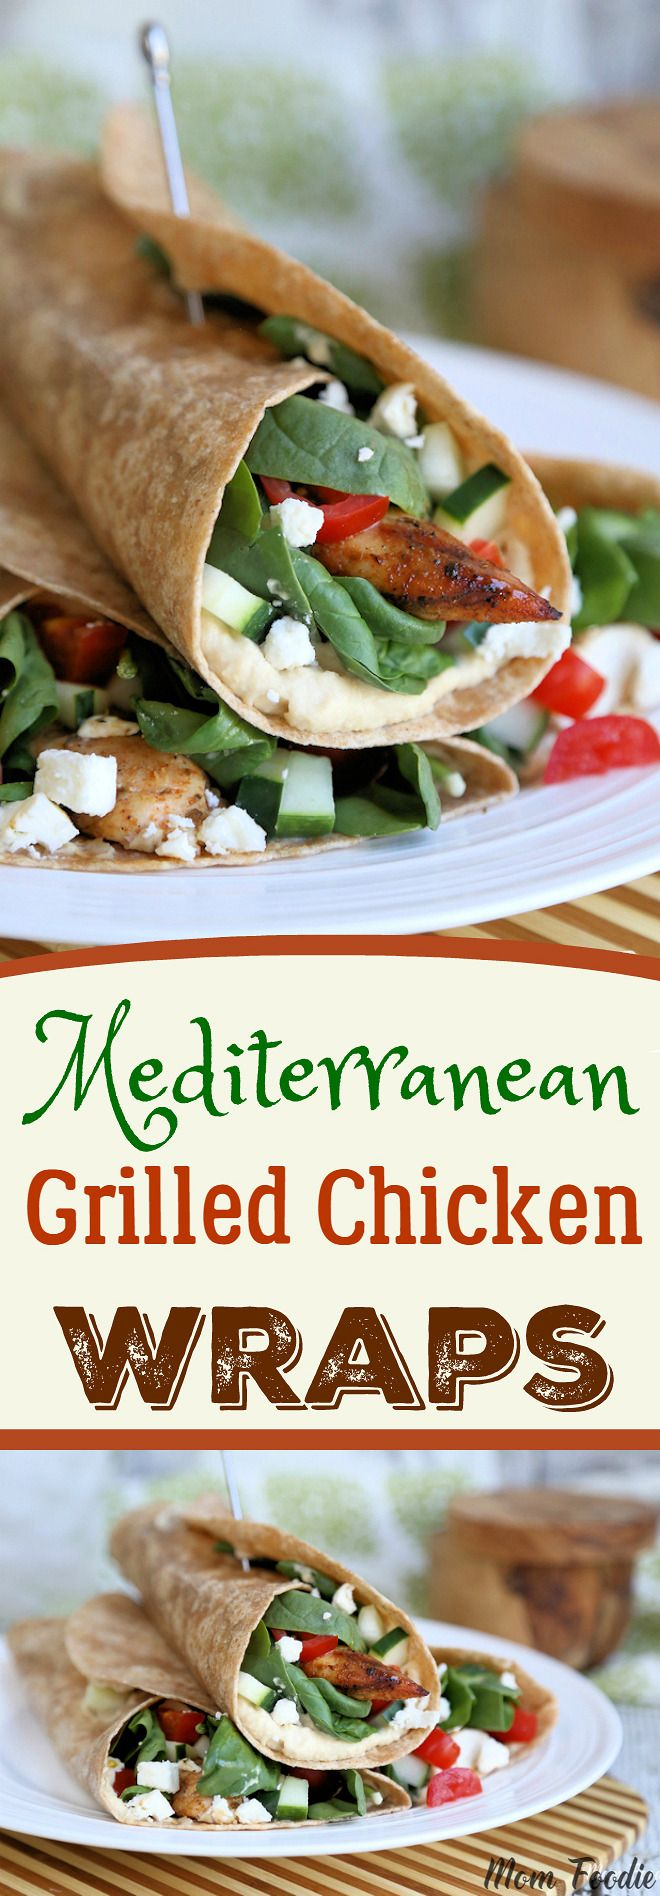 Mediterranean Grilled Chicken Wrap Recipe & Eating Better on a Budget @stopandshop #betterforyou #stopandshop #ad